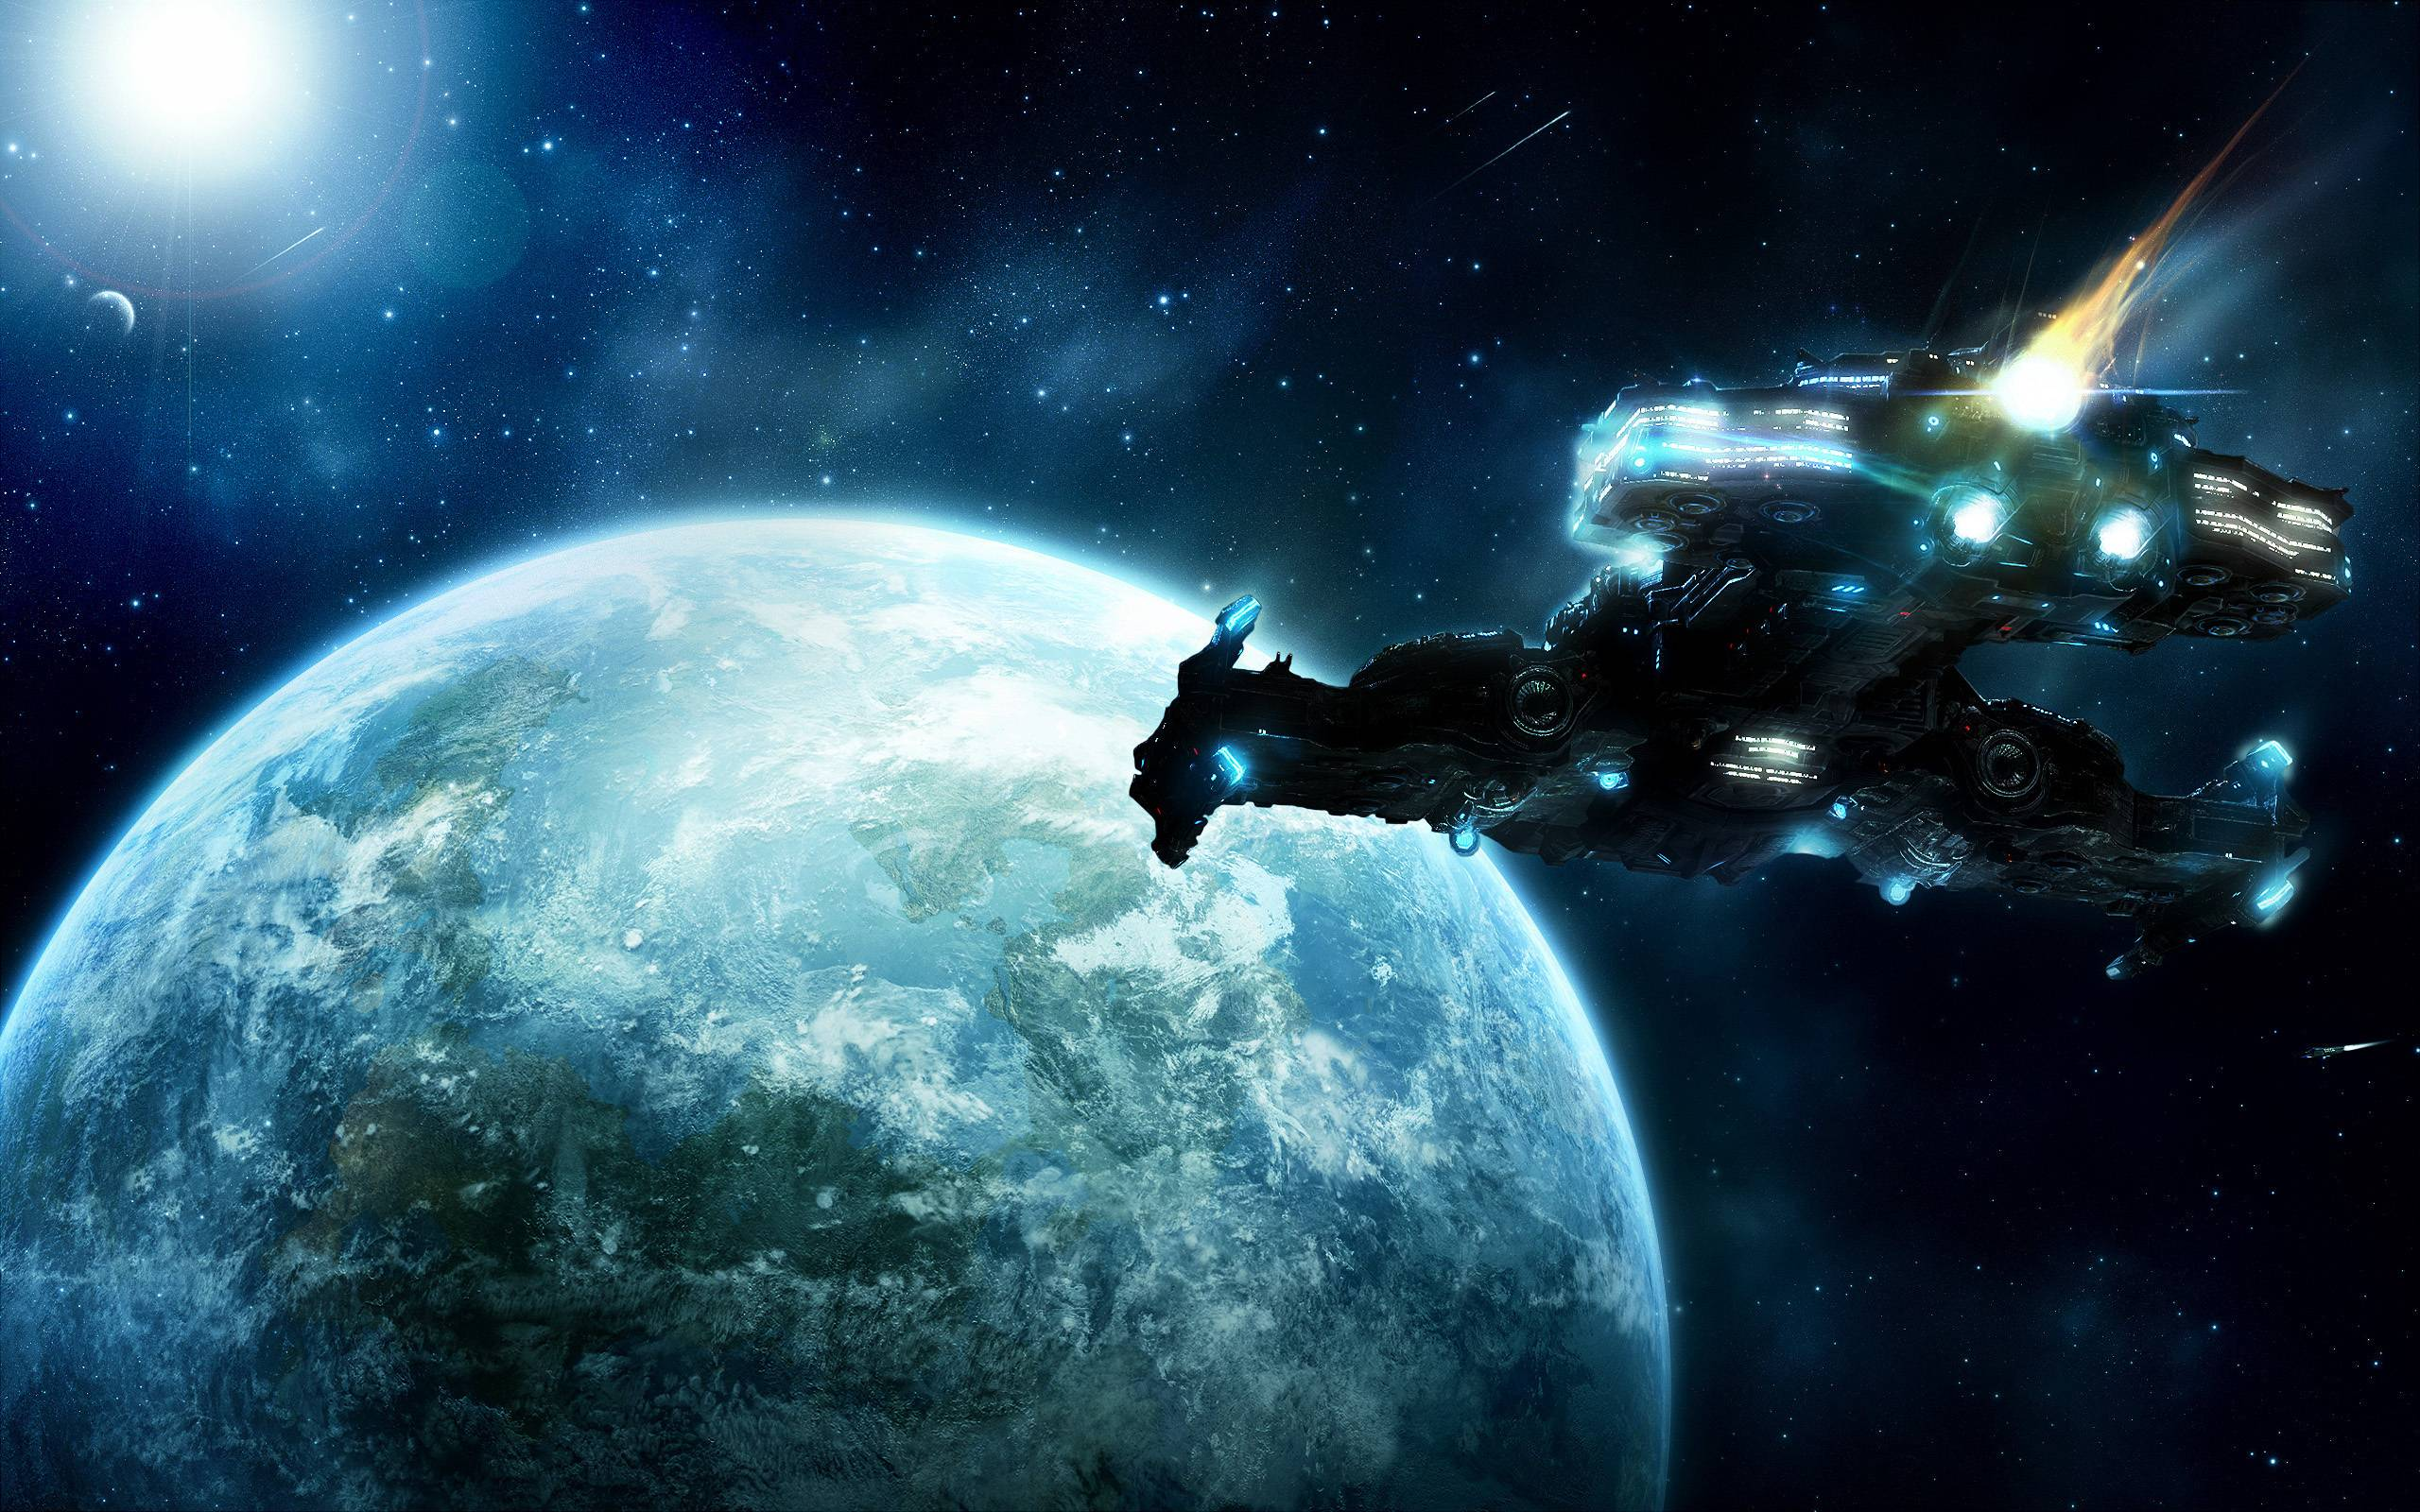 space travel wallpapers - photo #25